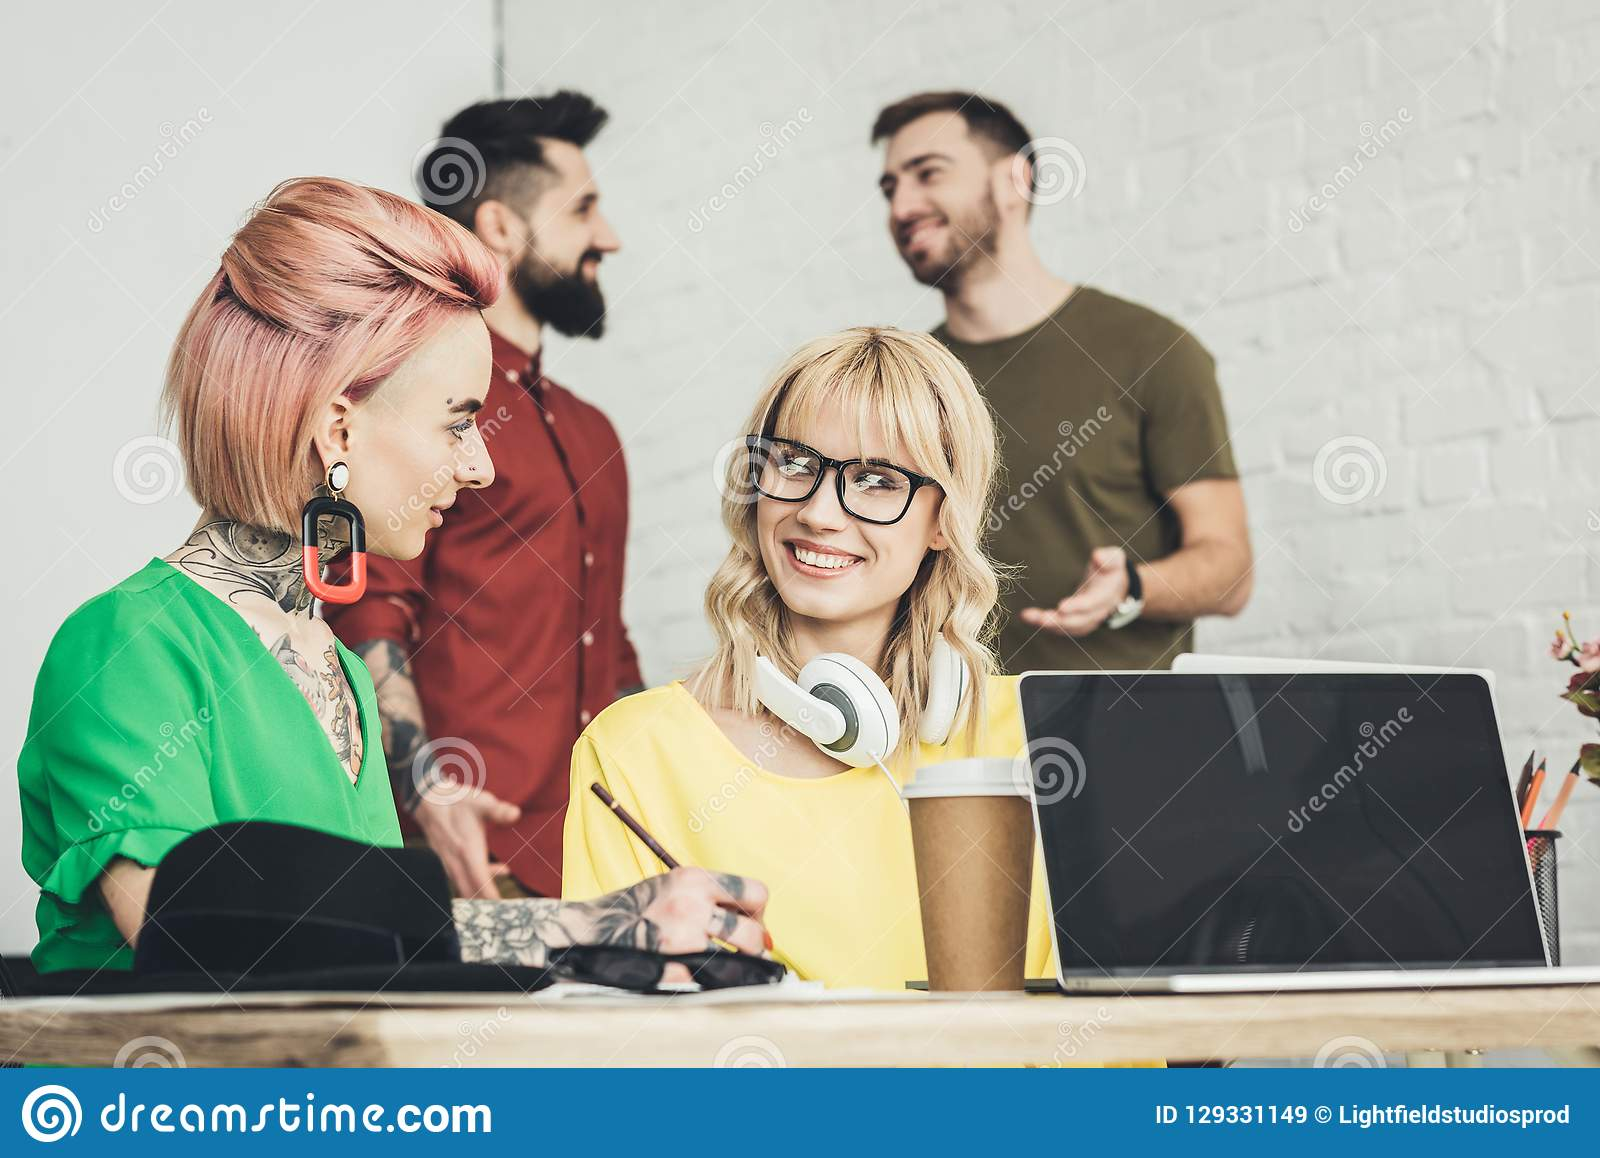 Smiling creative businesswomen working on project together while colleagues talking behind in office royalty free stock images